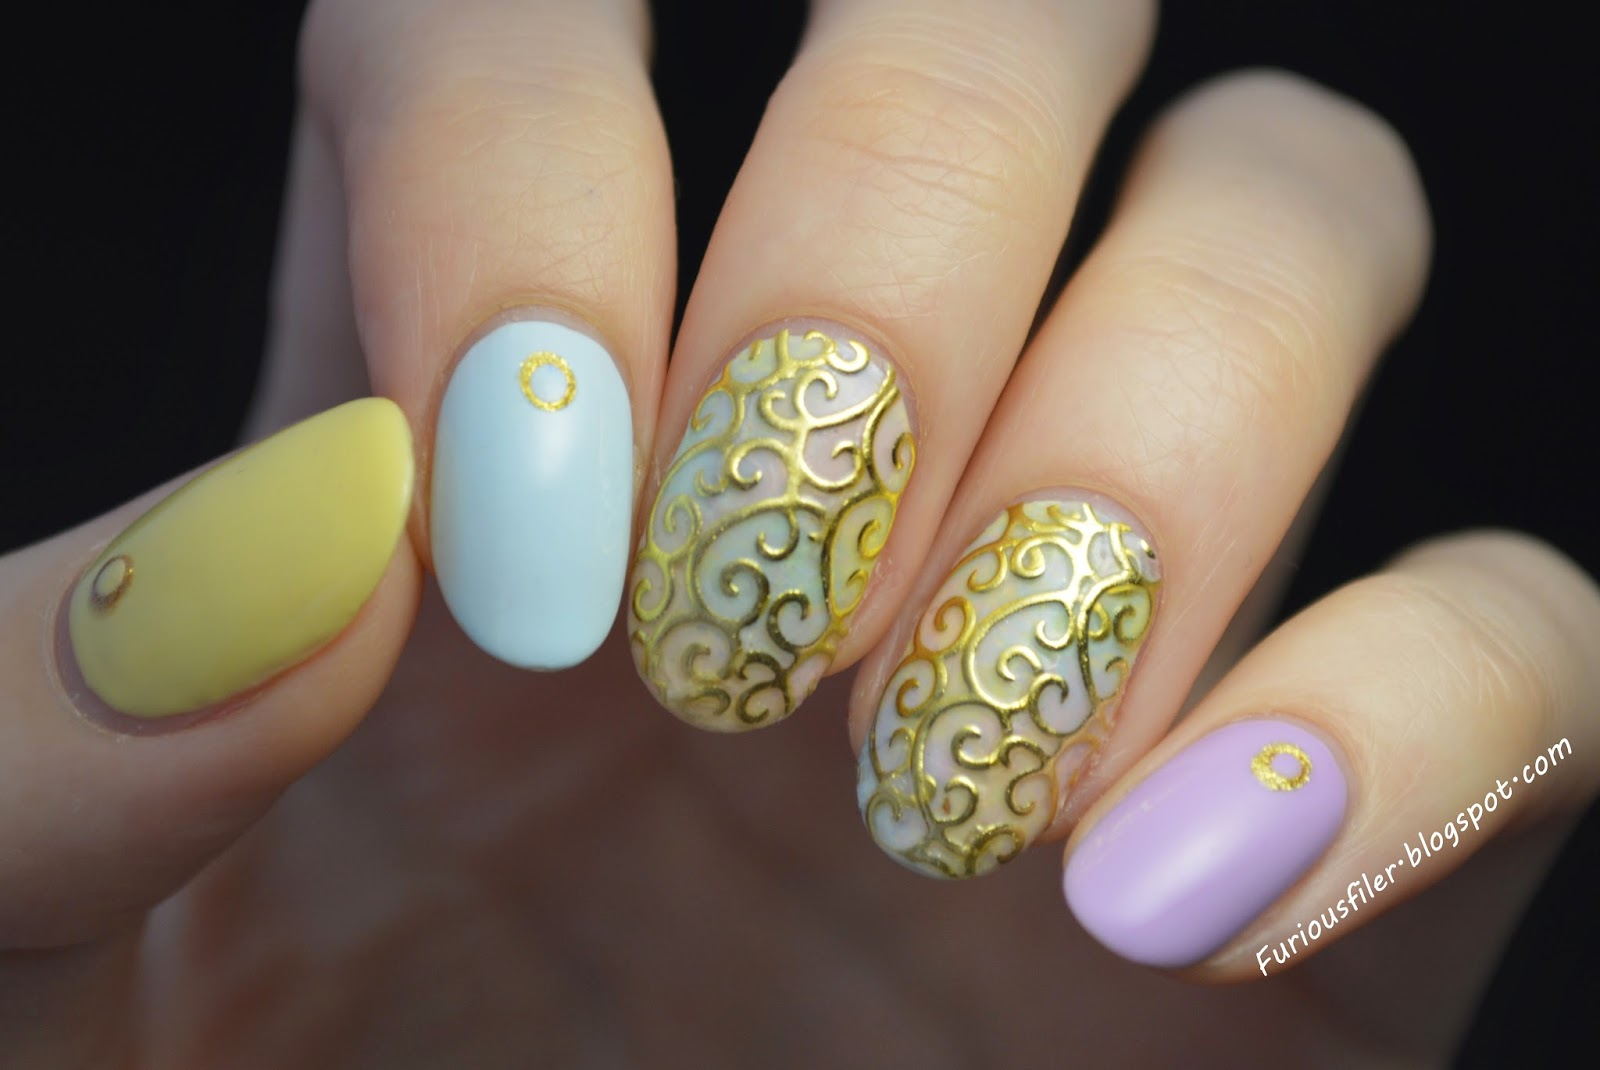 BPS, nail art stickers, gold, spring, pastels